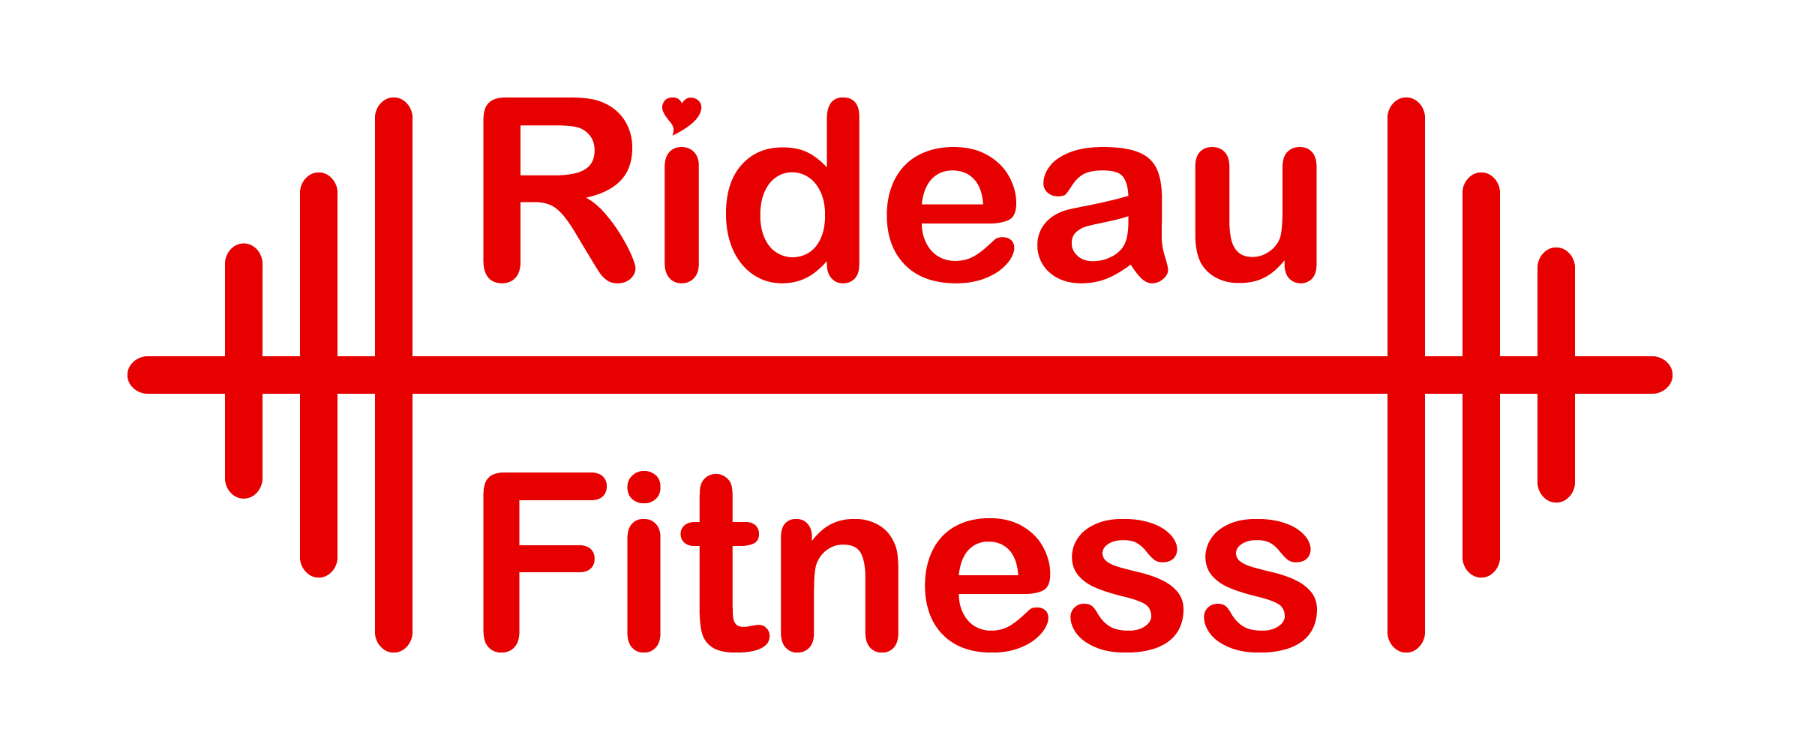 Rideau Fitness Personal Training